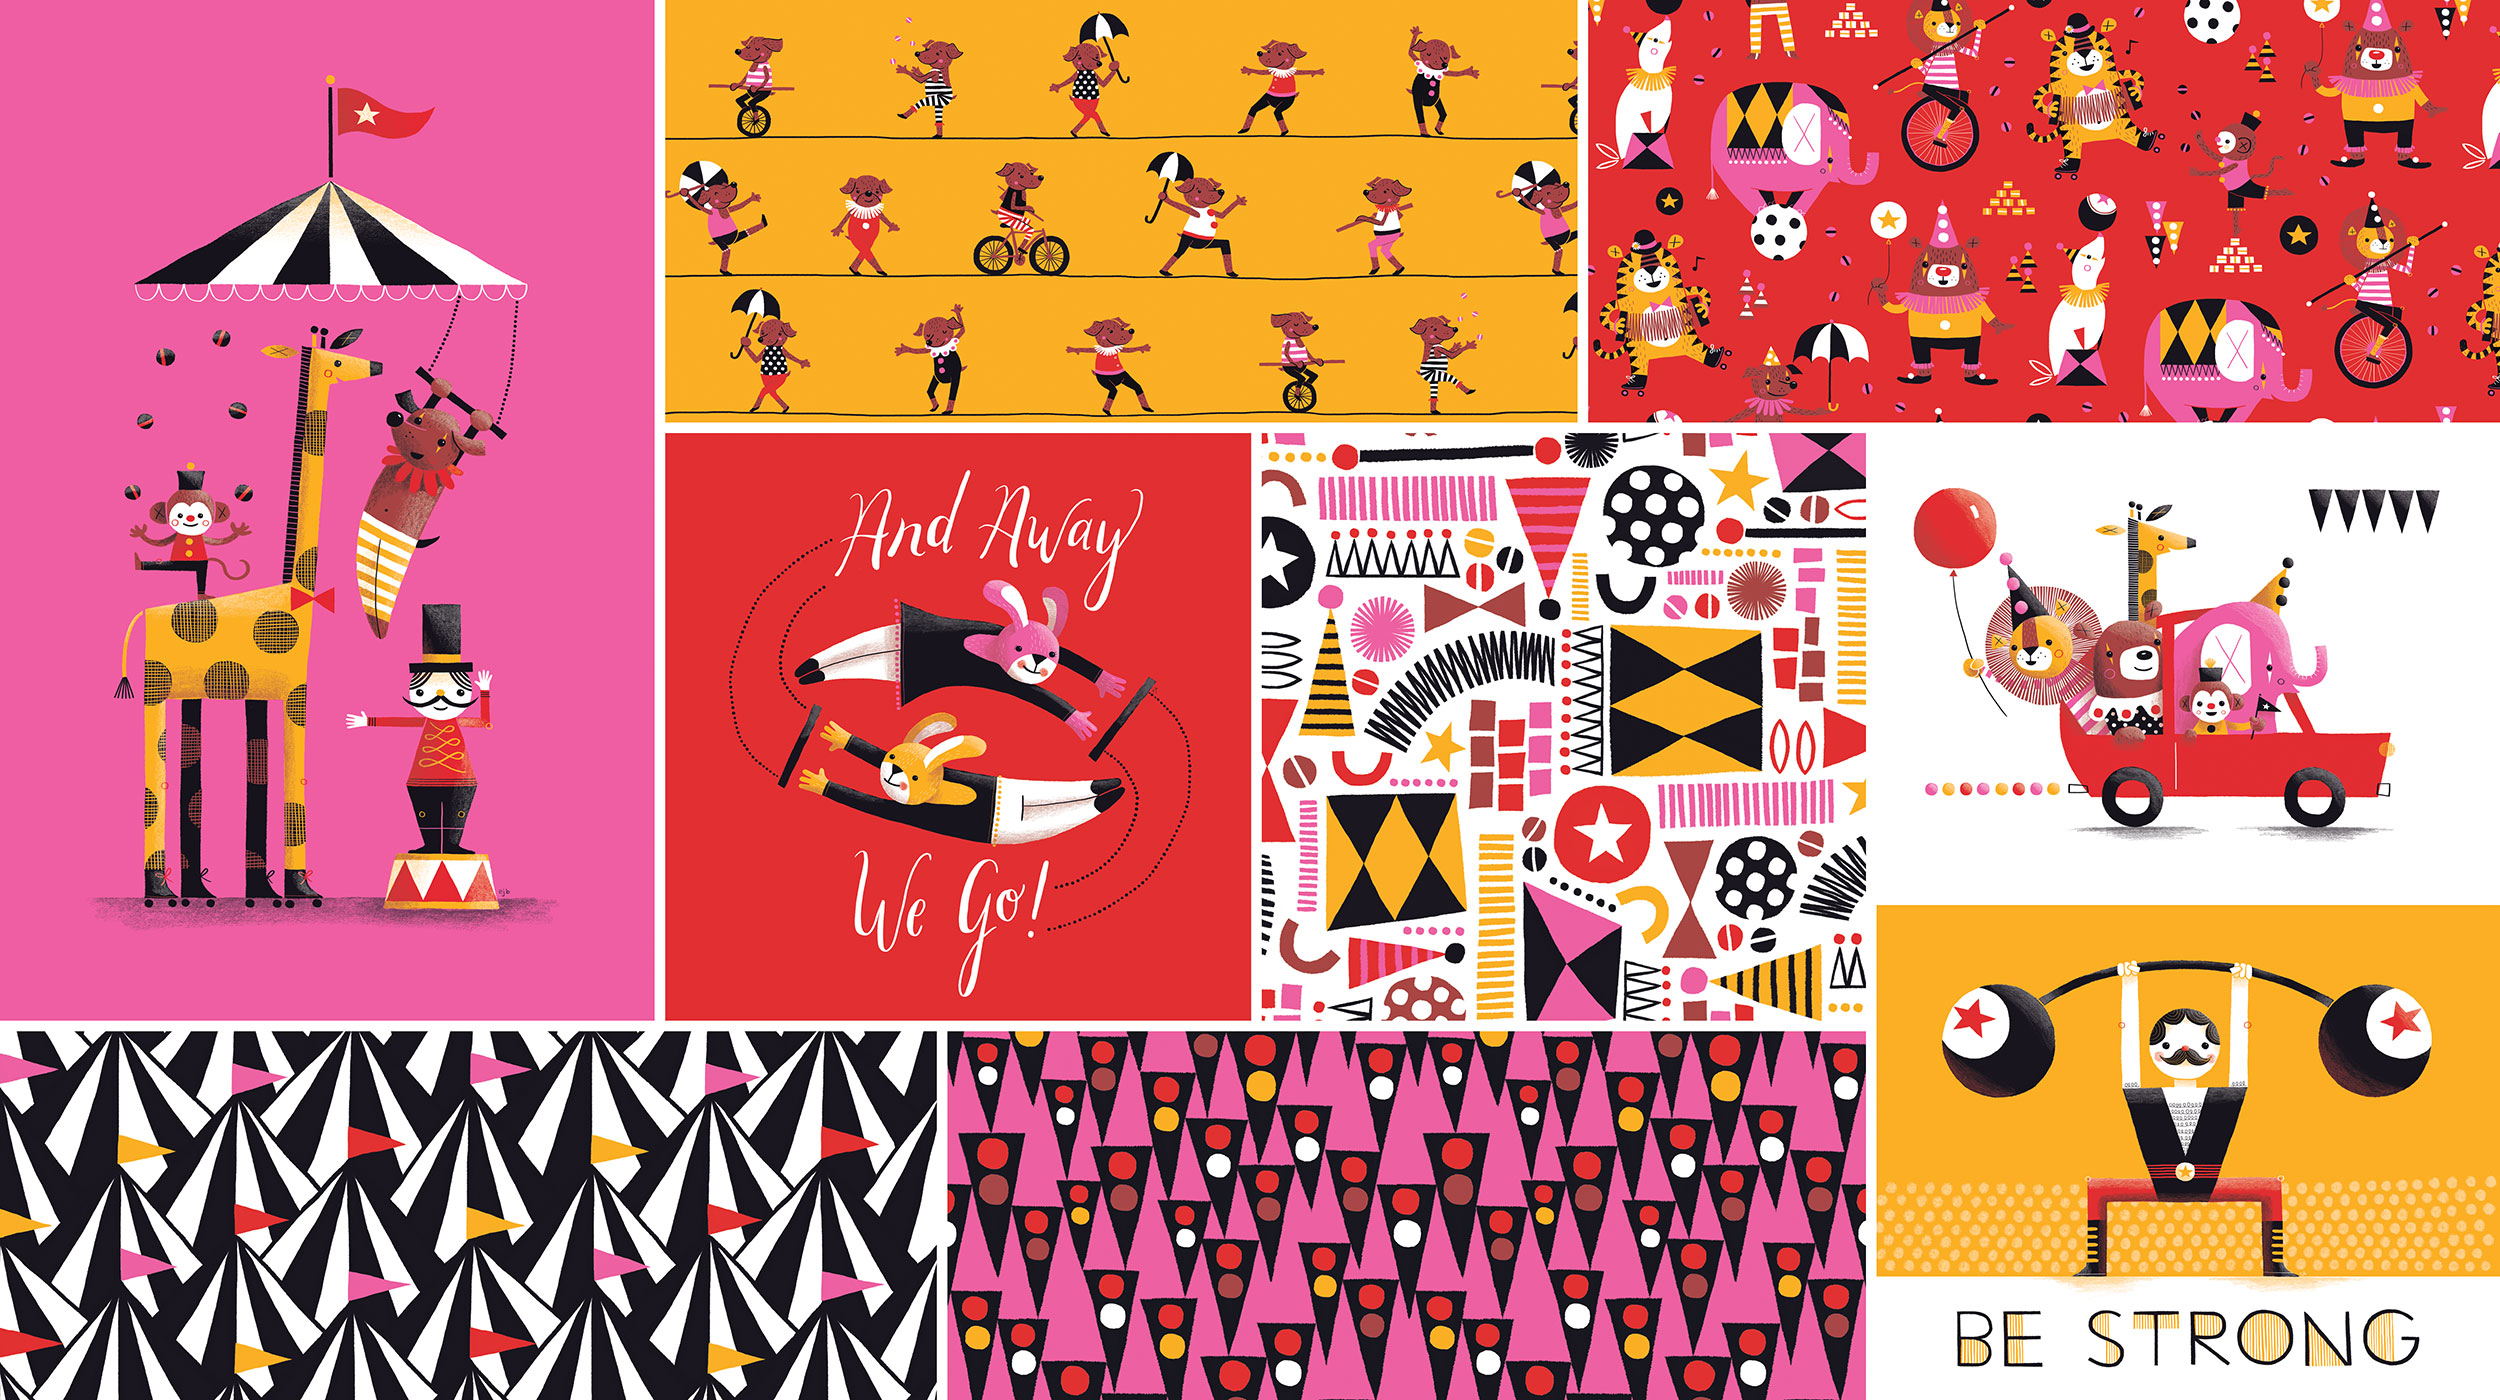 Circus imagery is so fun. First, it involves a lot of different animals, which I always love drawing. Secondly, there are many different shapes, textures and bold patterns that play into my style perfectly. For 10,000 Thrills I utilized a more geometric approach which gave this collection a funky, modern twist.